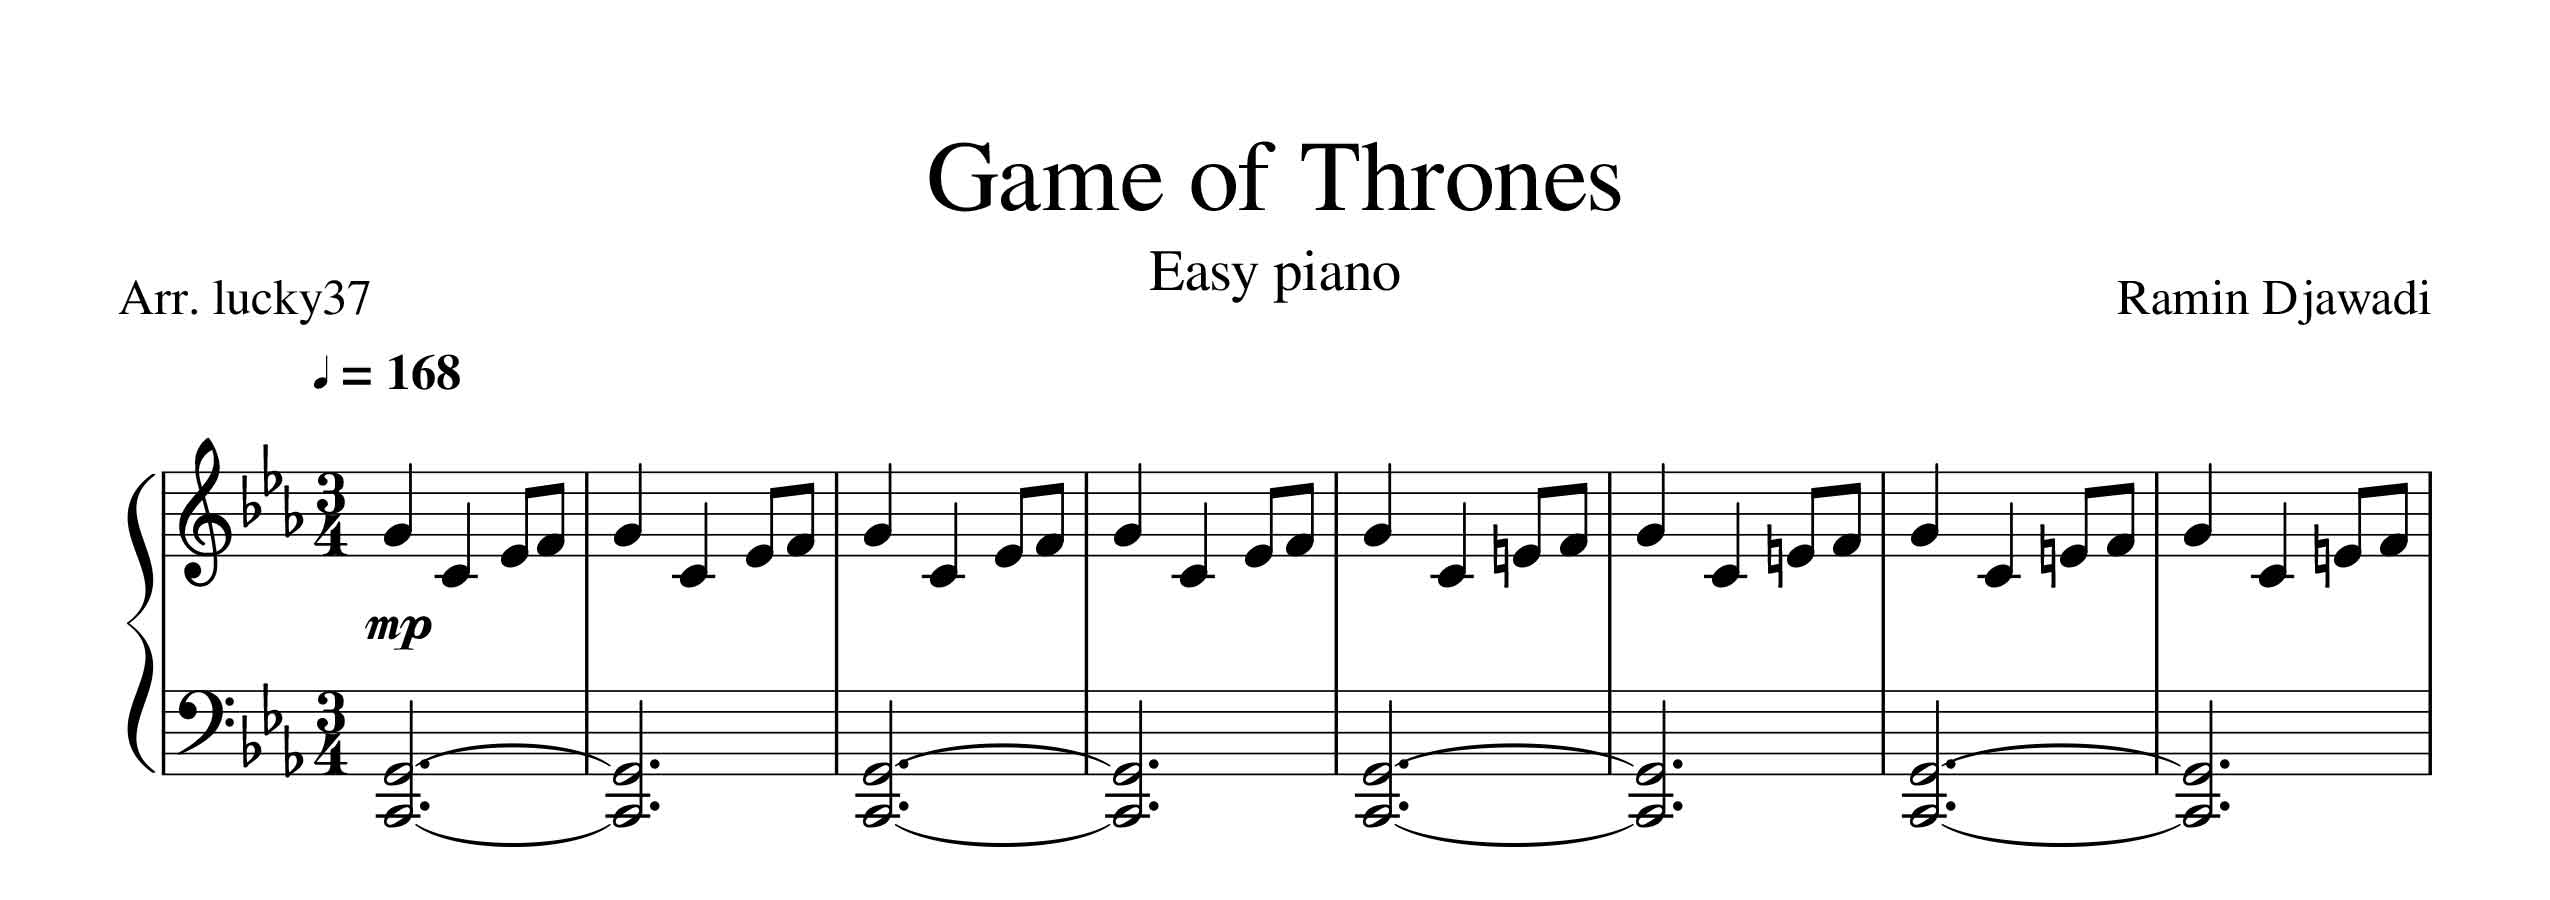 Game_of_Thrones_Easy_piano